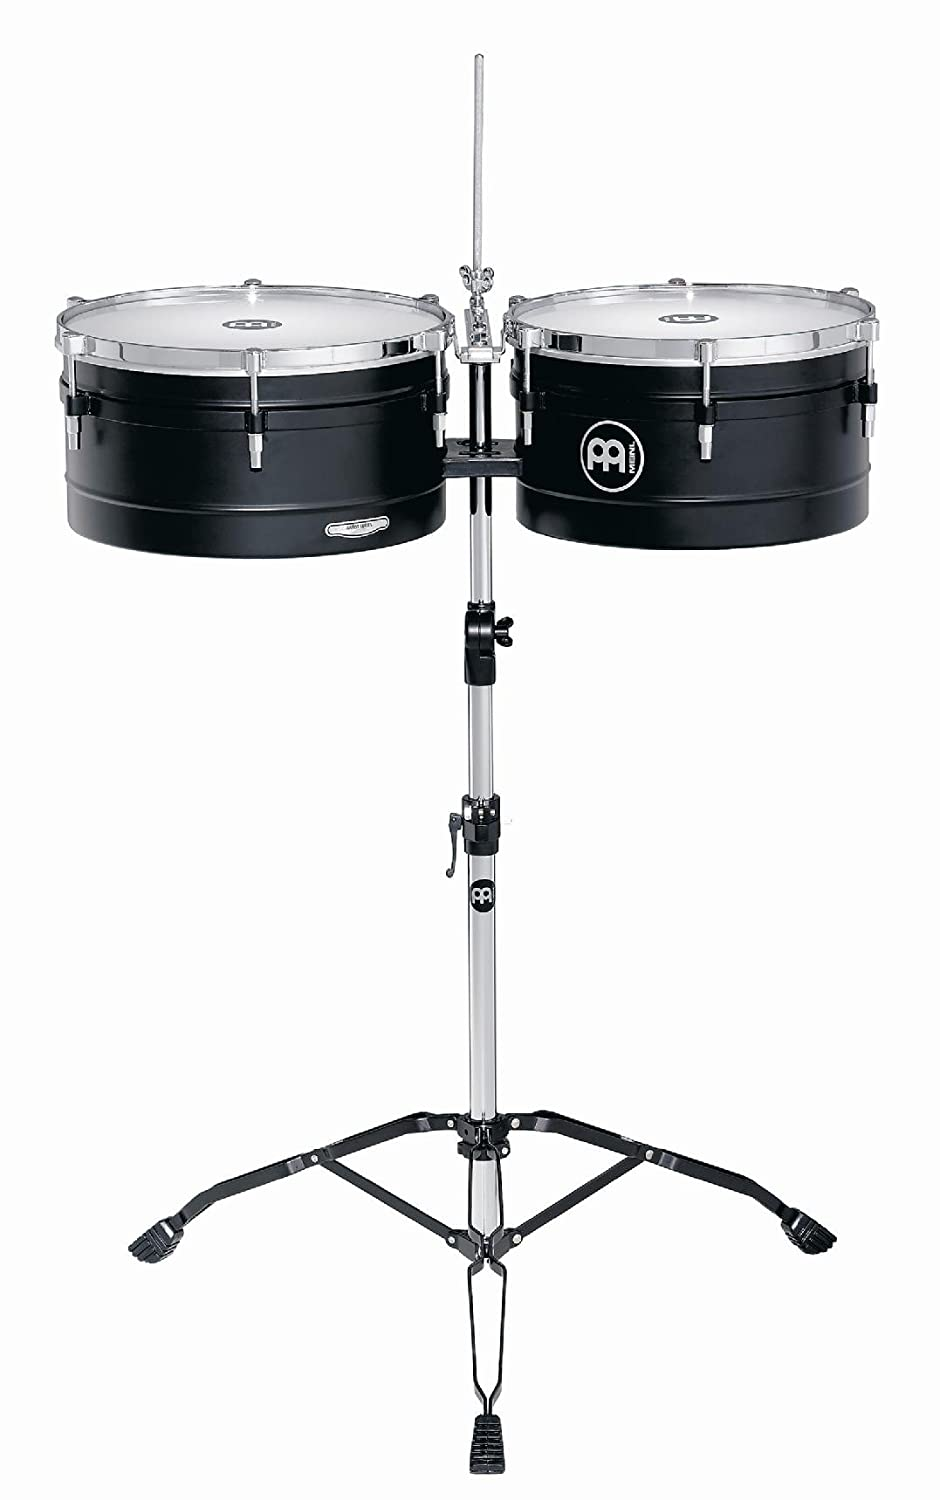 Meinl Percussion AV1BK Artist Series Steel Timbales, Black, 14-Inch and 15-Inch Meinl USA L.C.